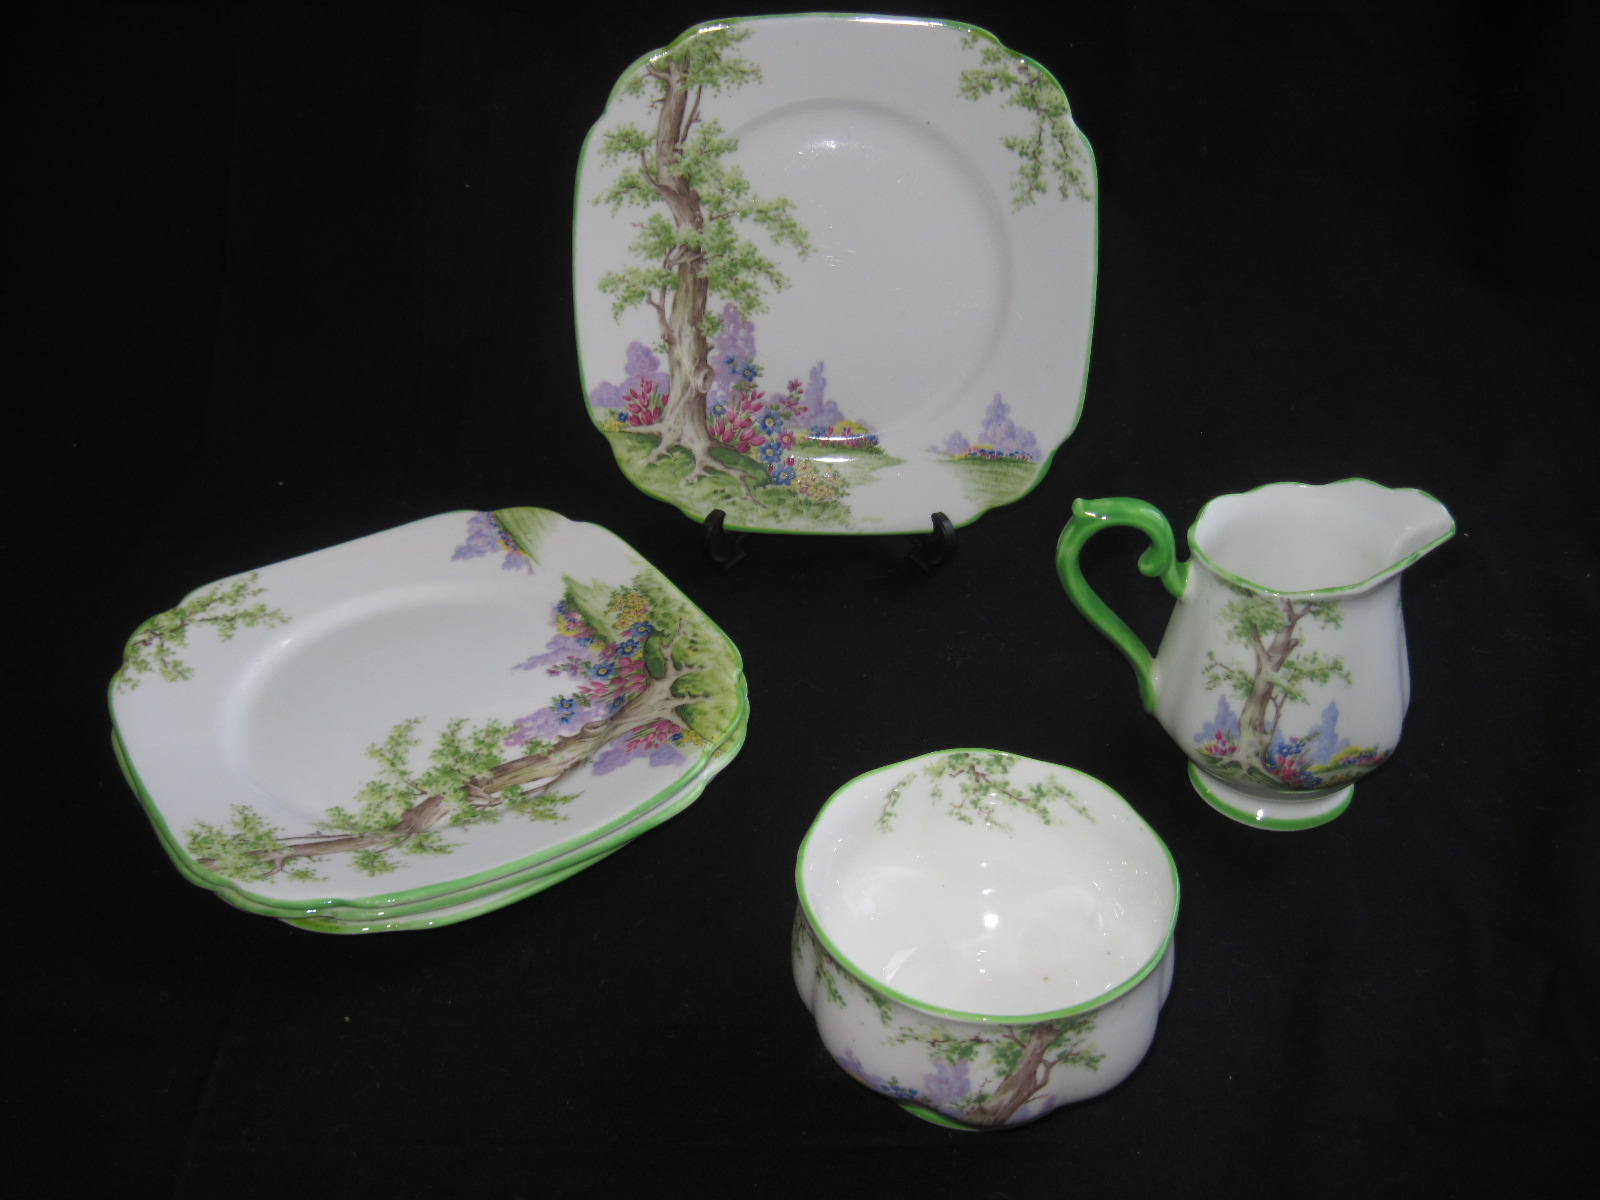 Dating royal albert crown china